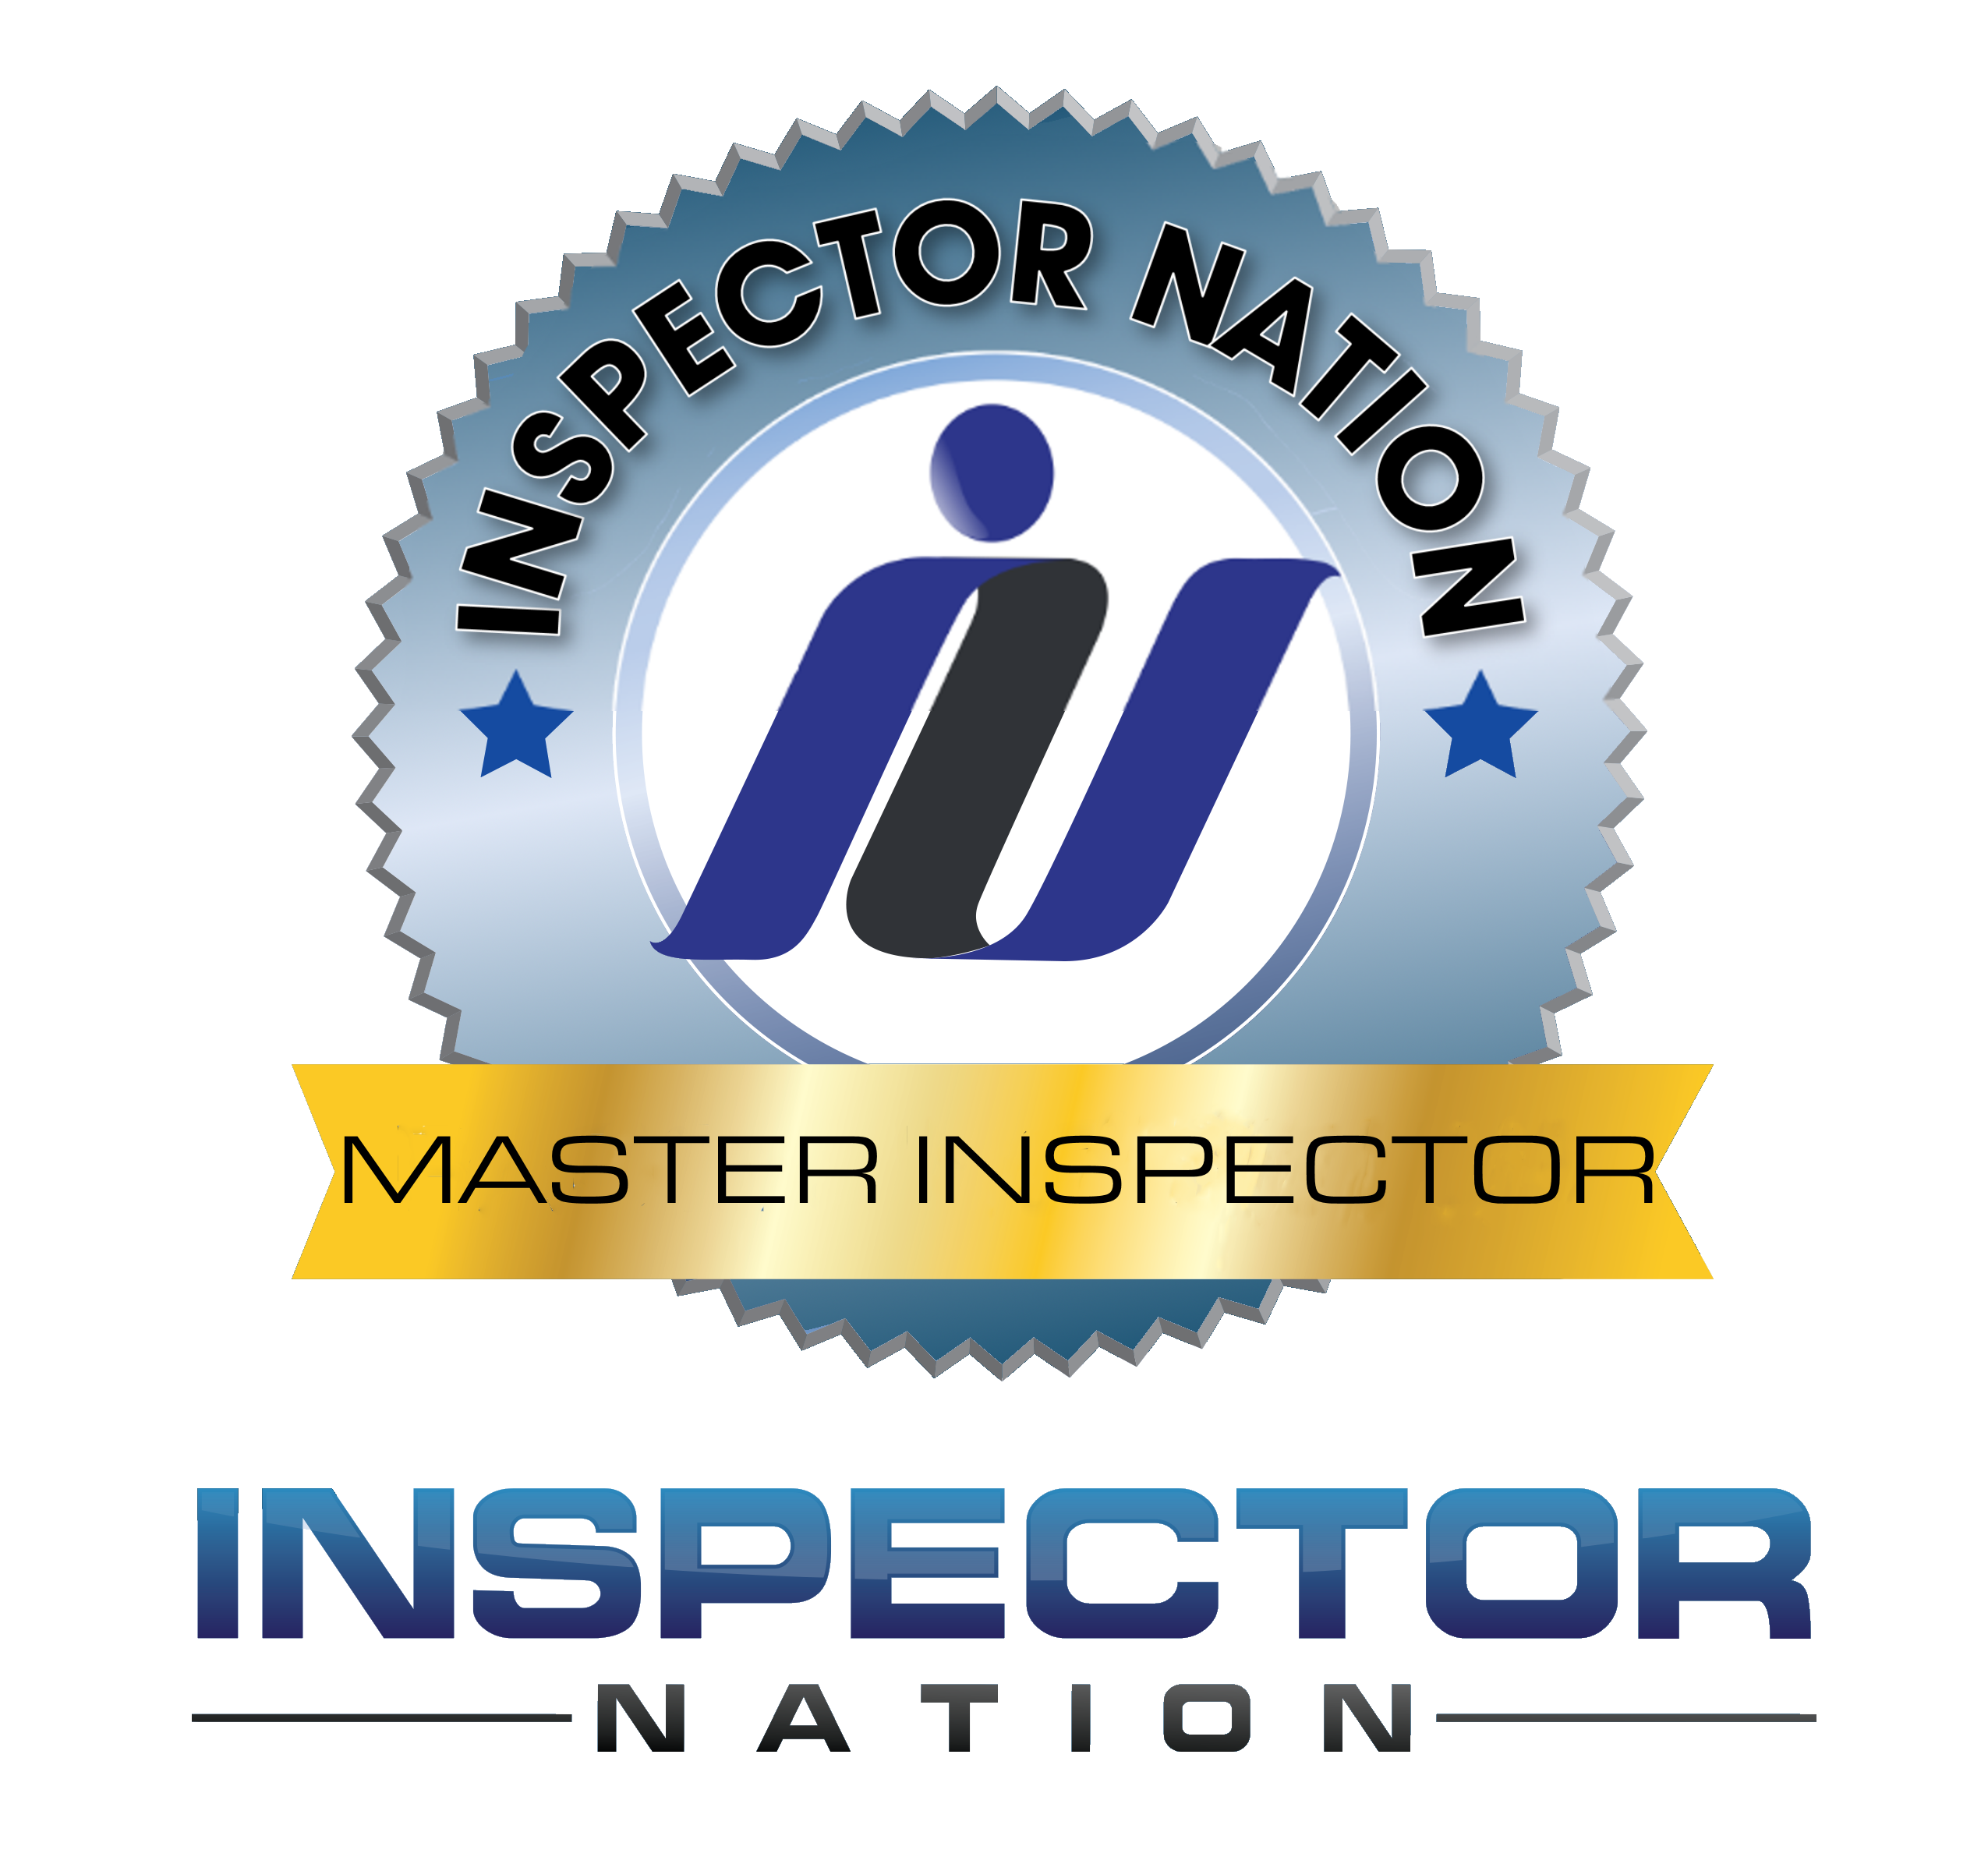 inspector nation master inspector inmi ini  inspector nation certified home inspector badge emblem icon